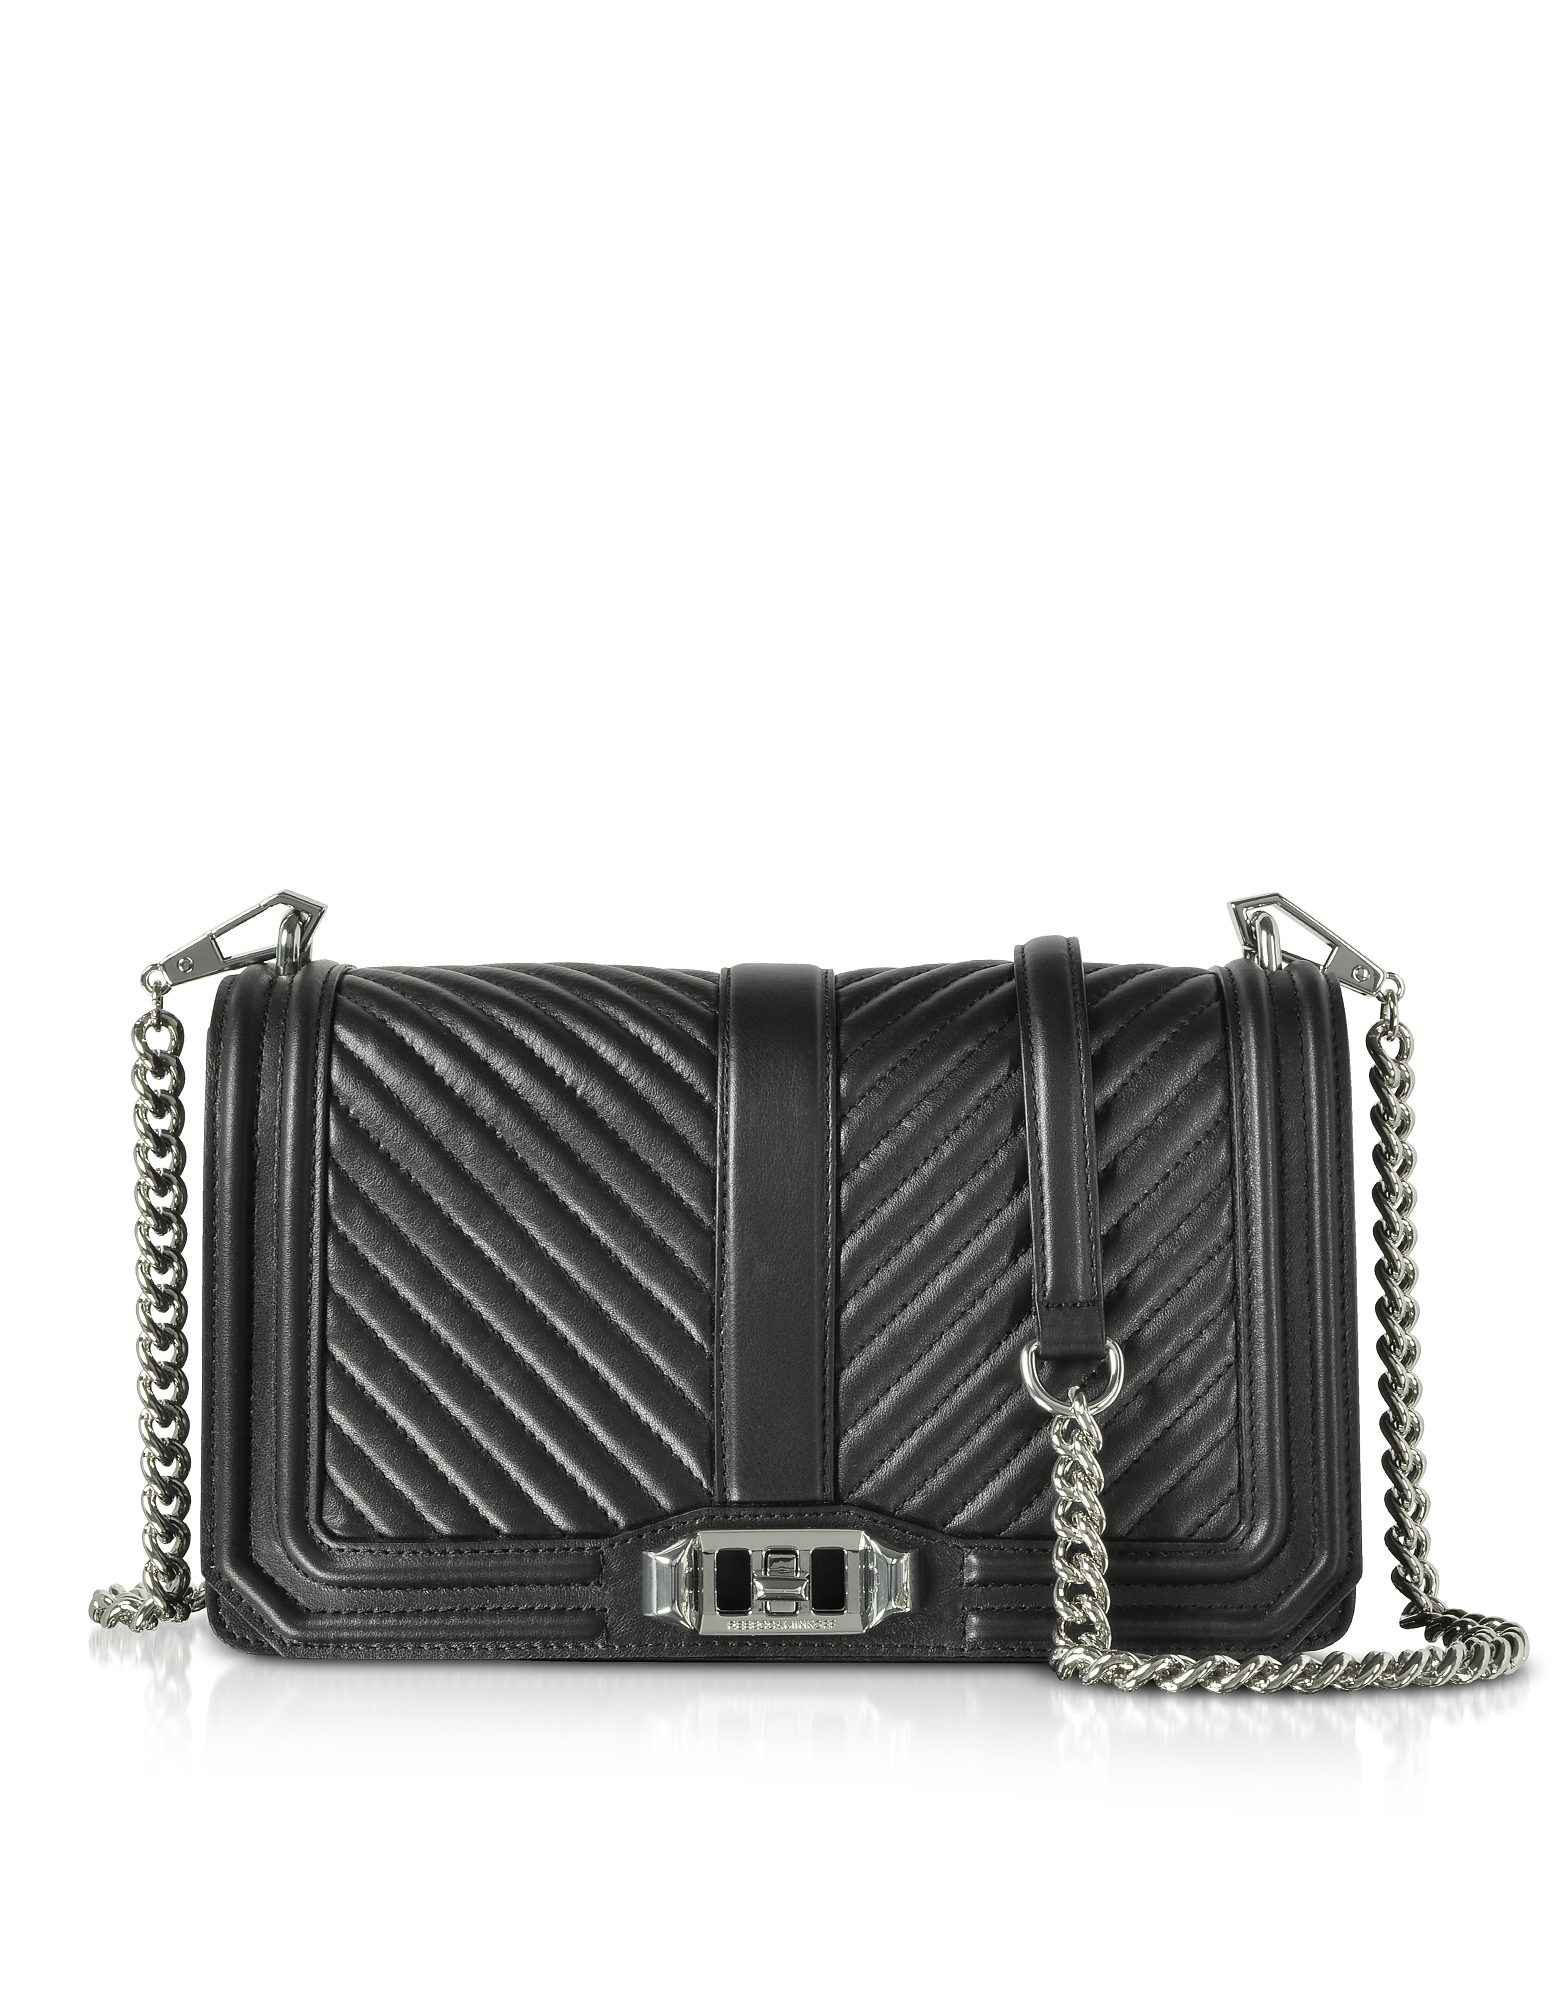 Rebecca Minkoff Handbags, Black Quilted Leather Love Crossbody Bag